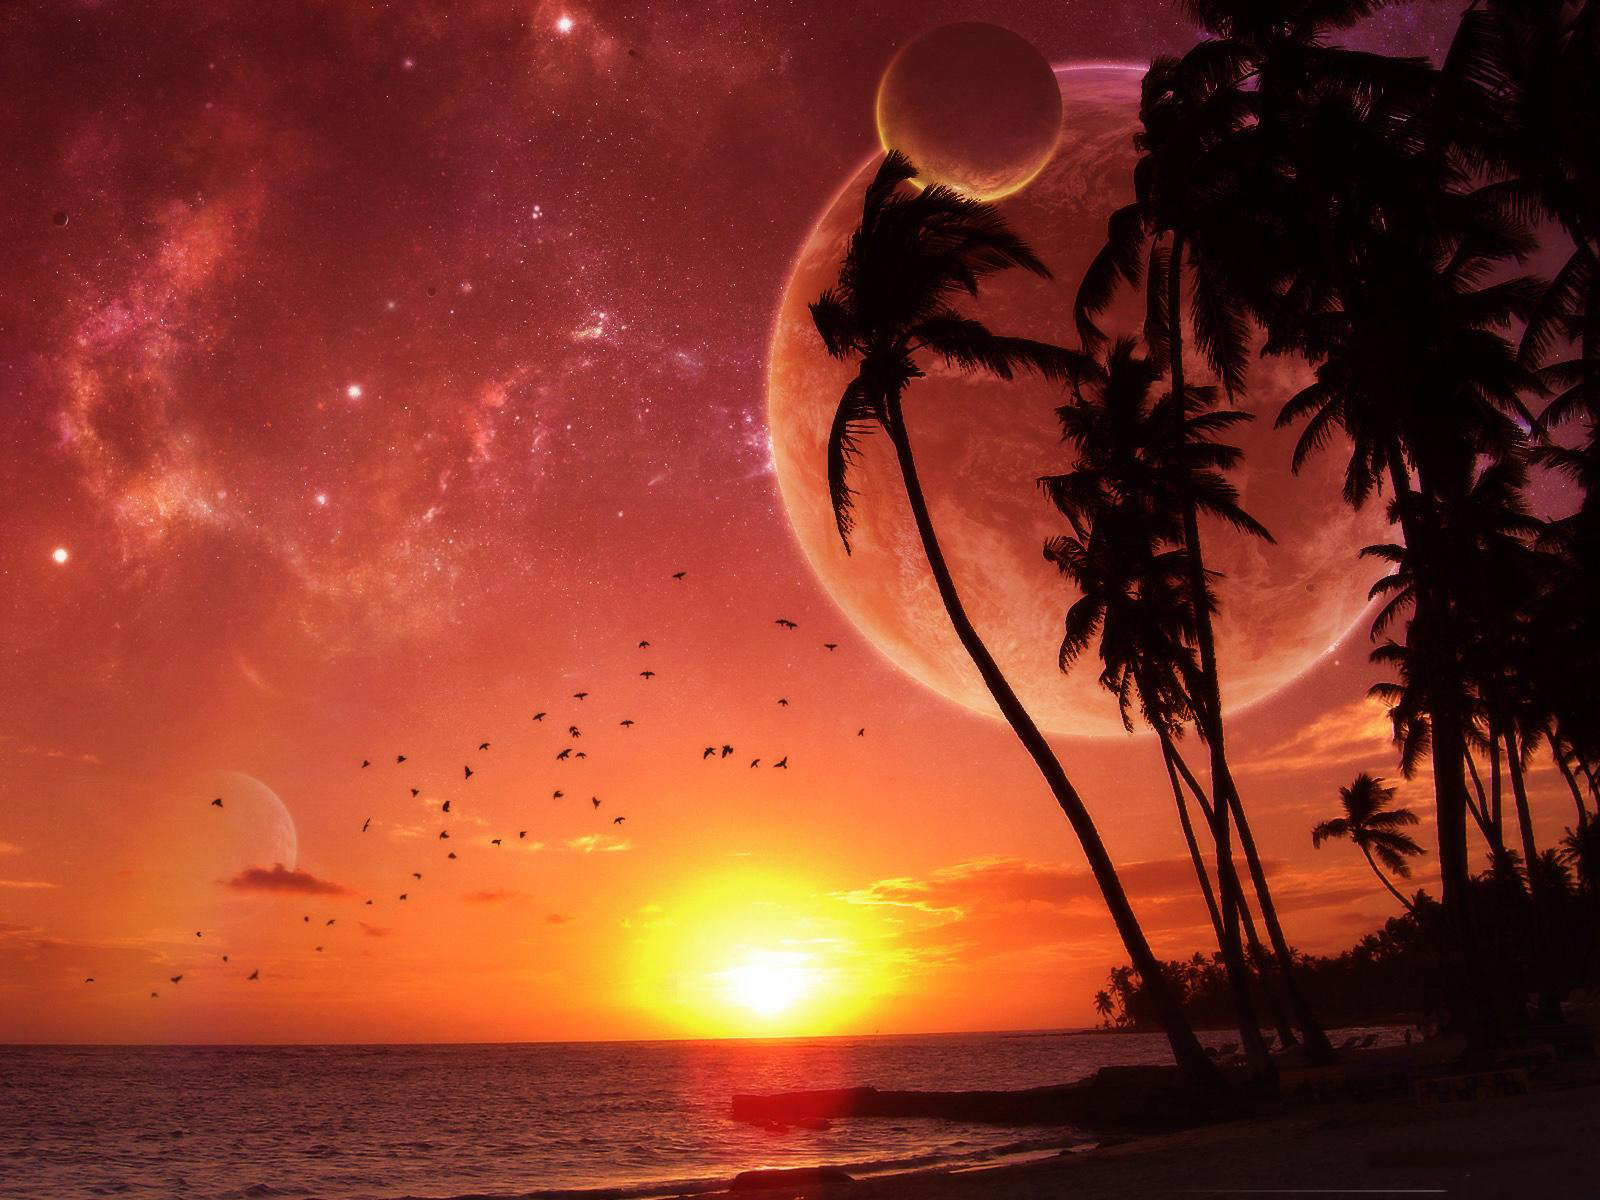 nature sunrise new xp wallpapers windows7windows8 xp7 pc them mobile themes pc background walls ...